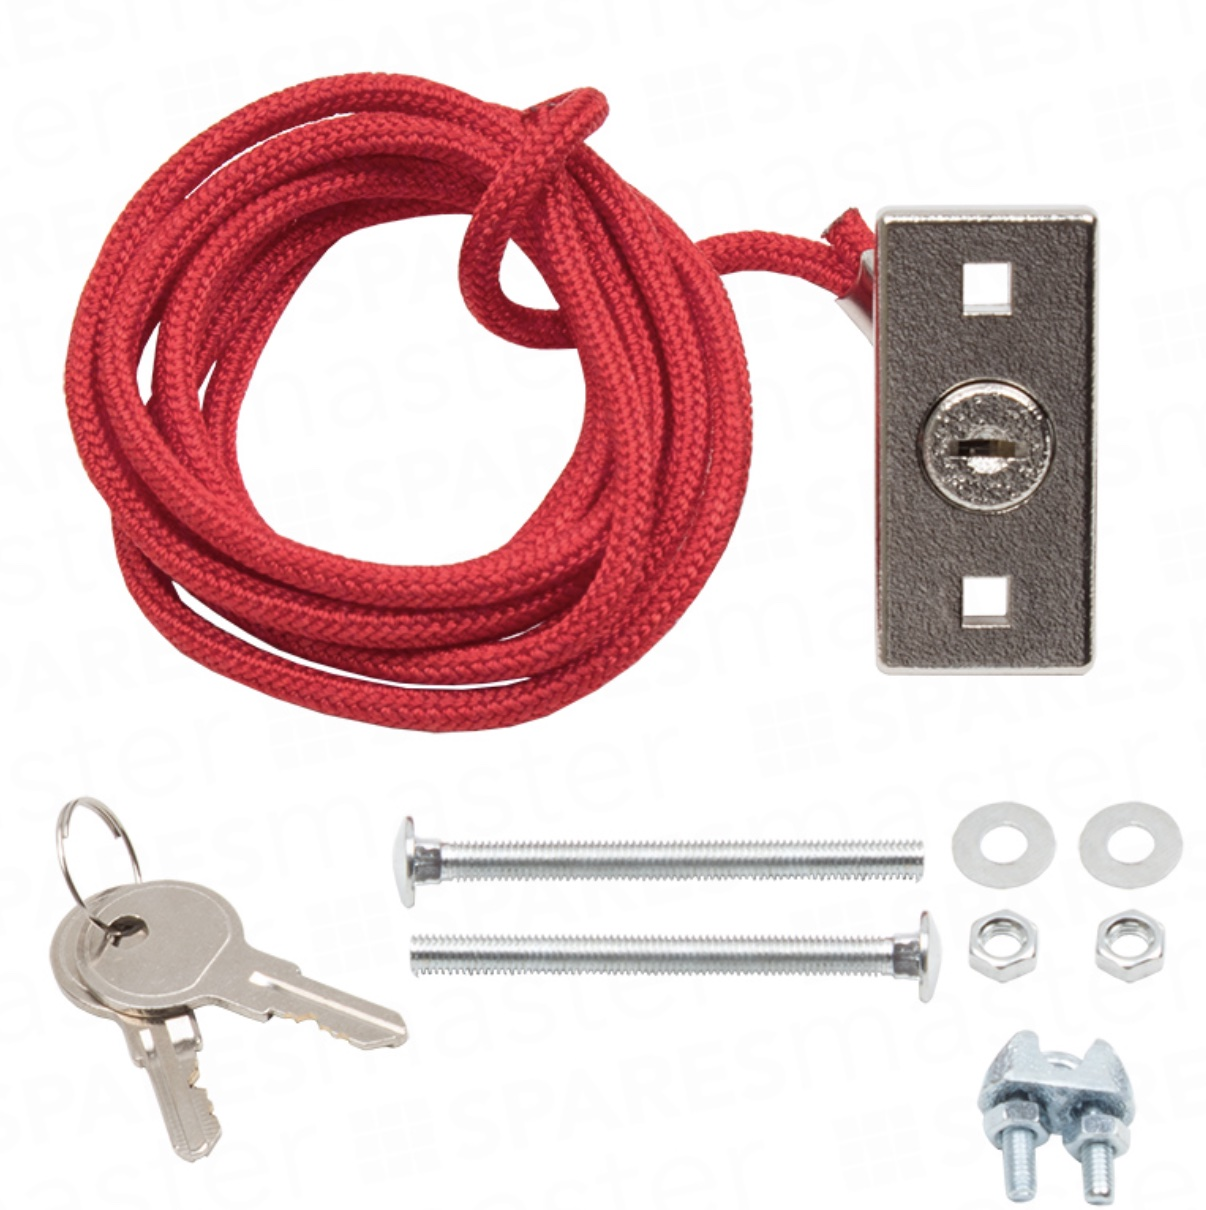 Chamberlain External Quick Release Lock Pull Cable